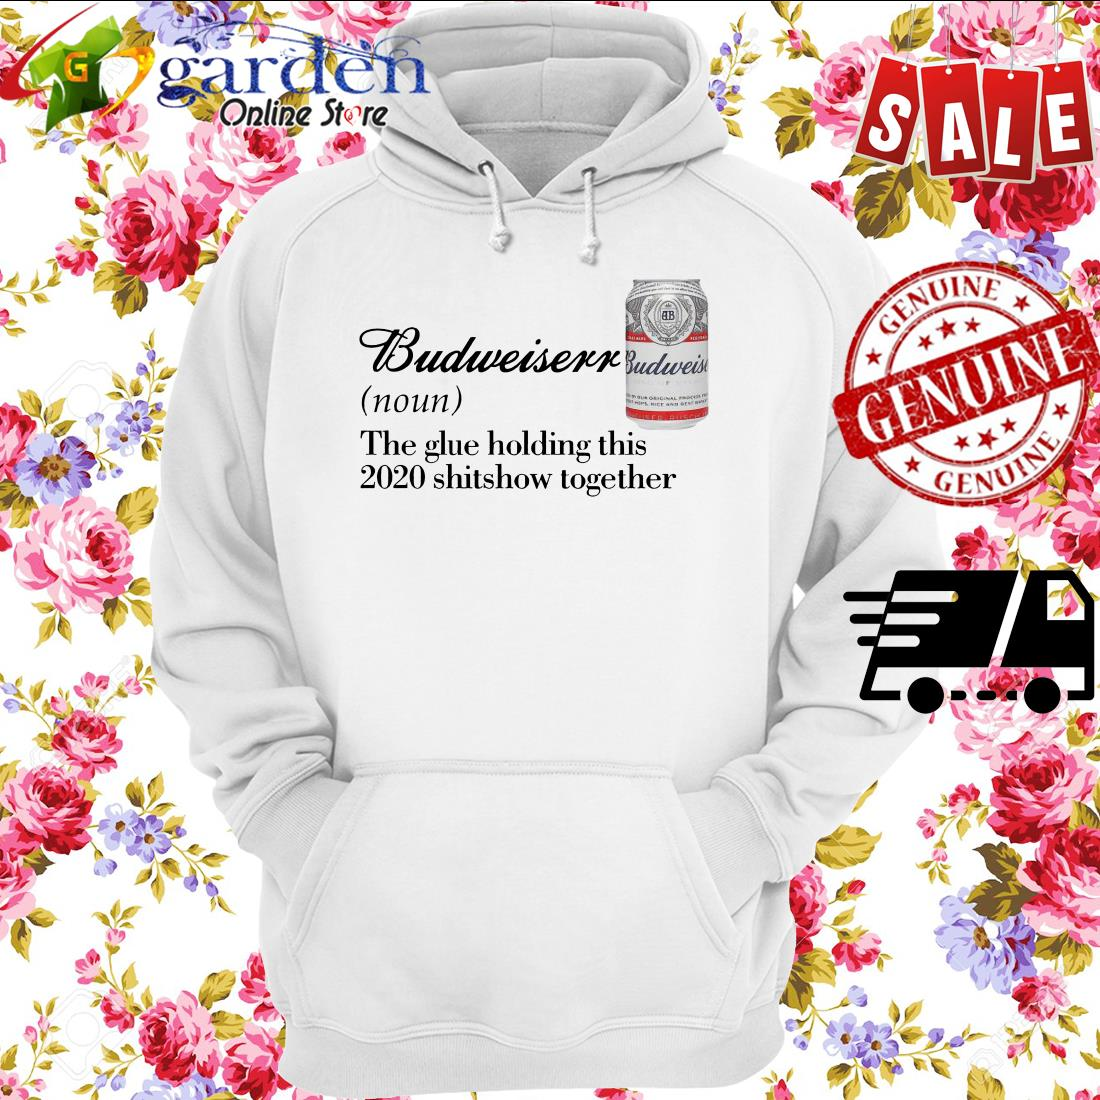 Budweiser the glue holding this 2020 shitshow together hoodie